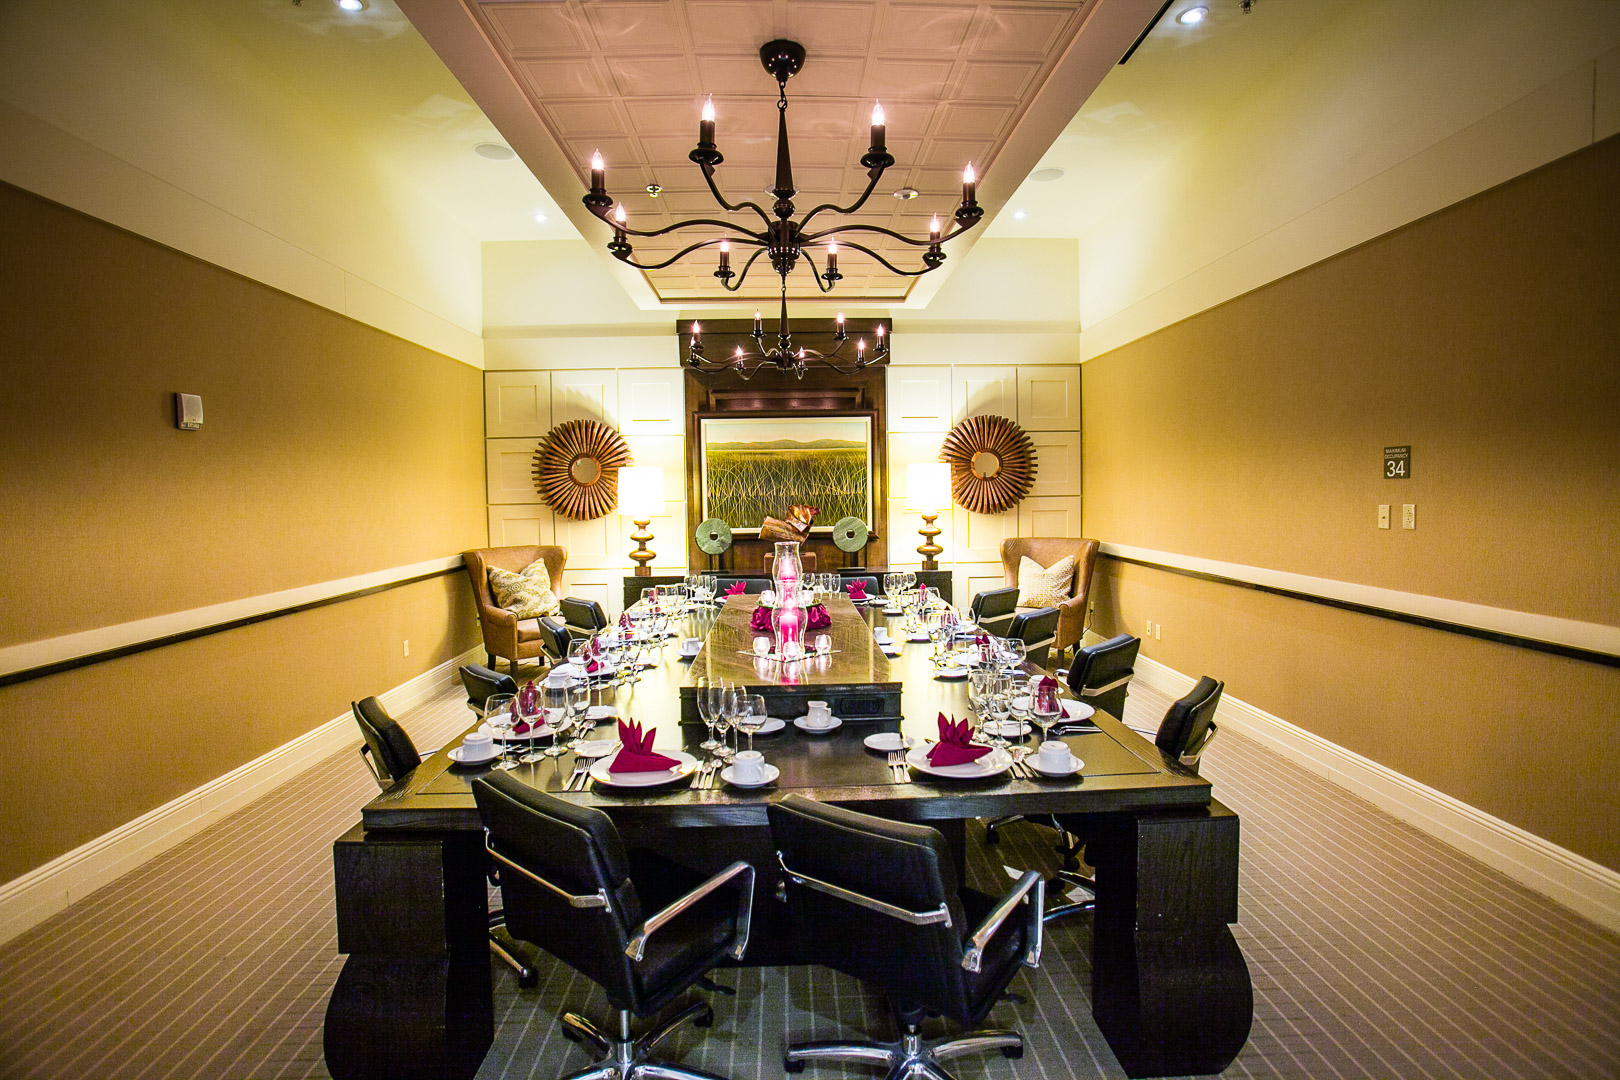 large meeting style table set up for a dining experience